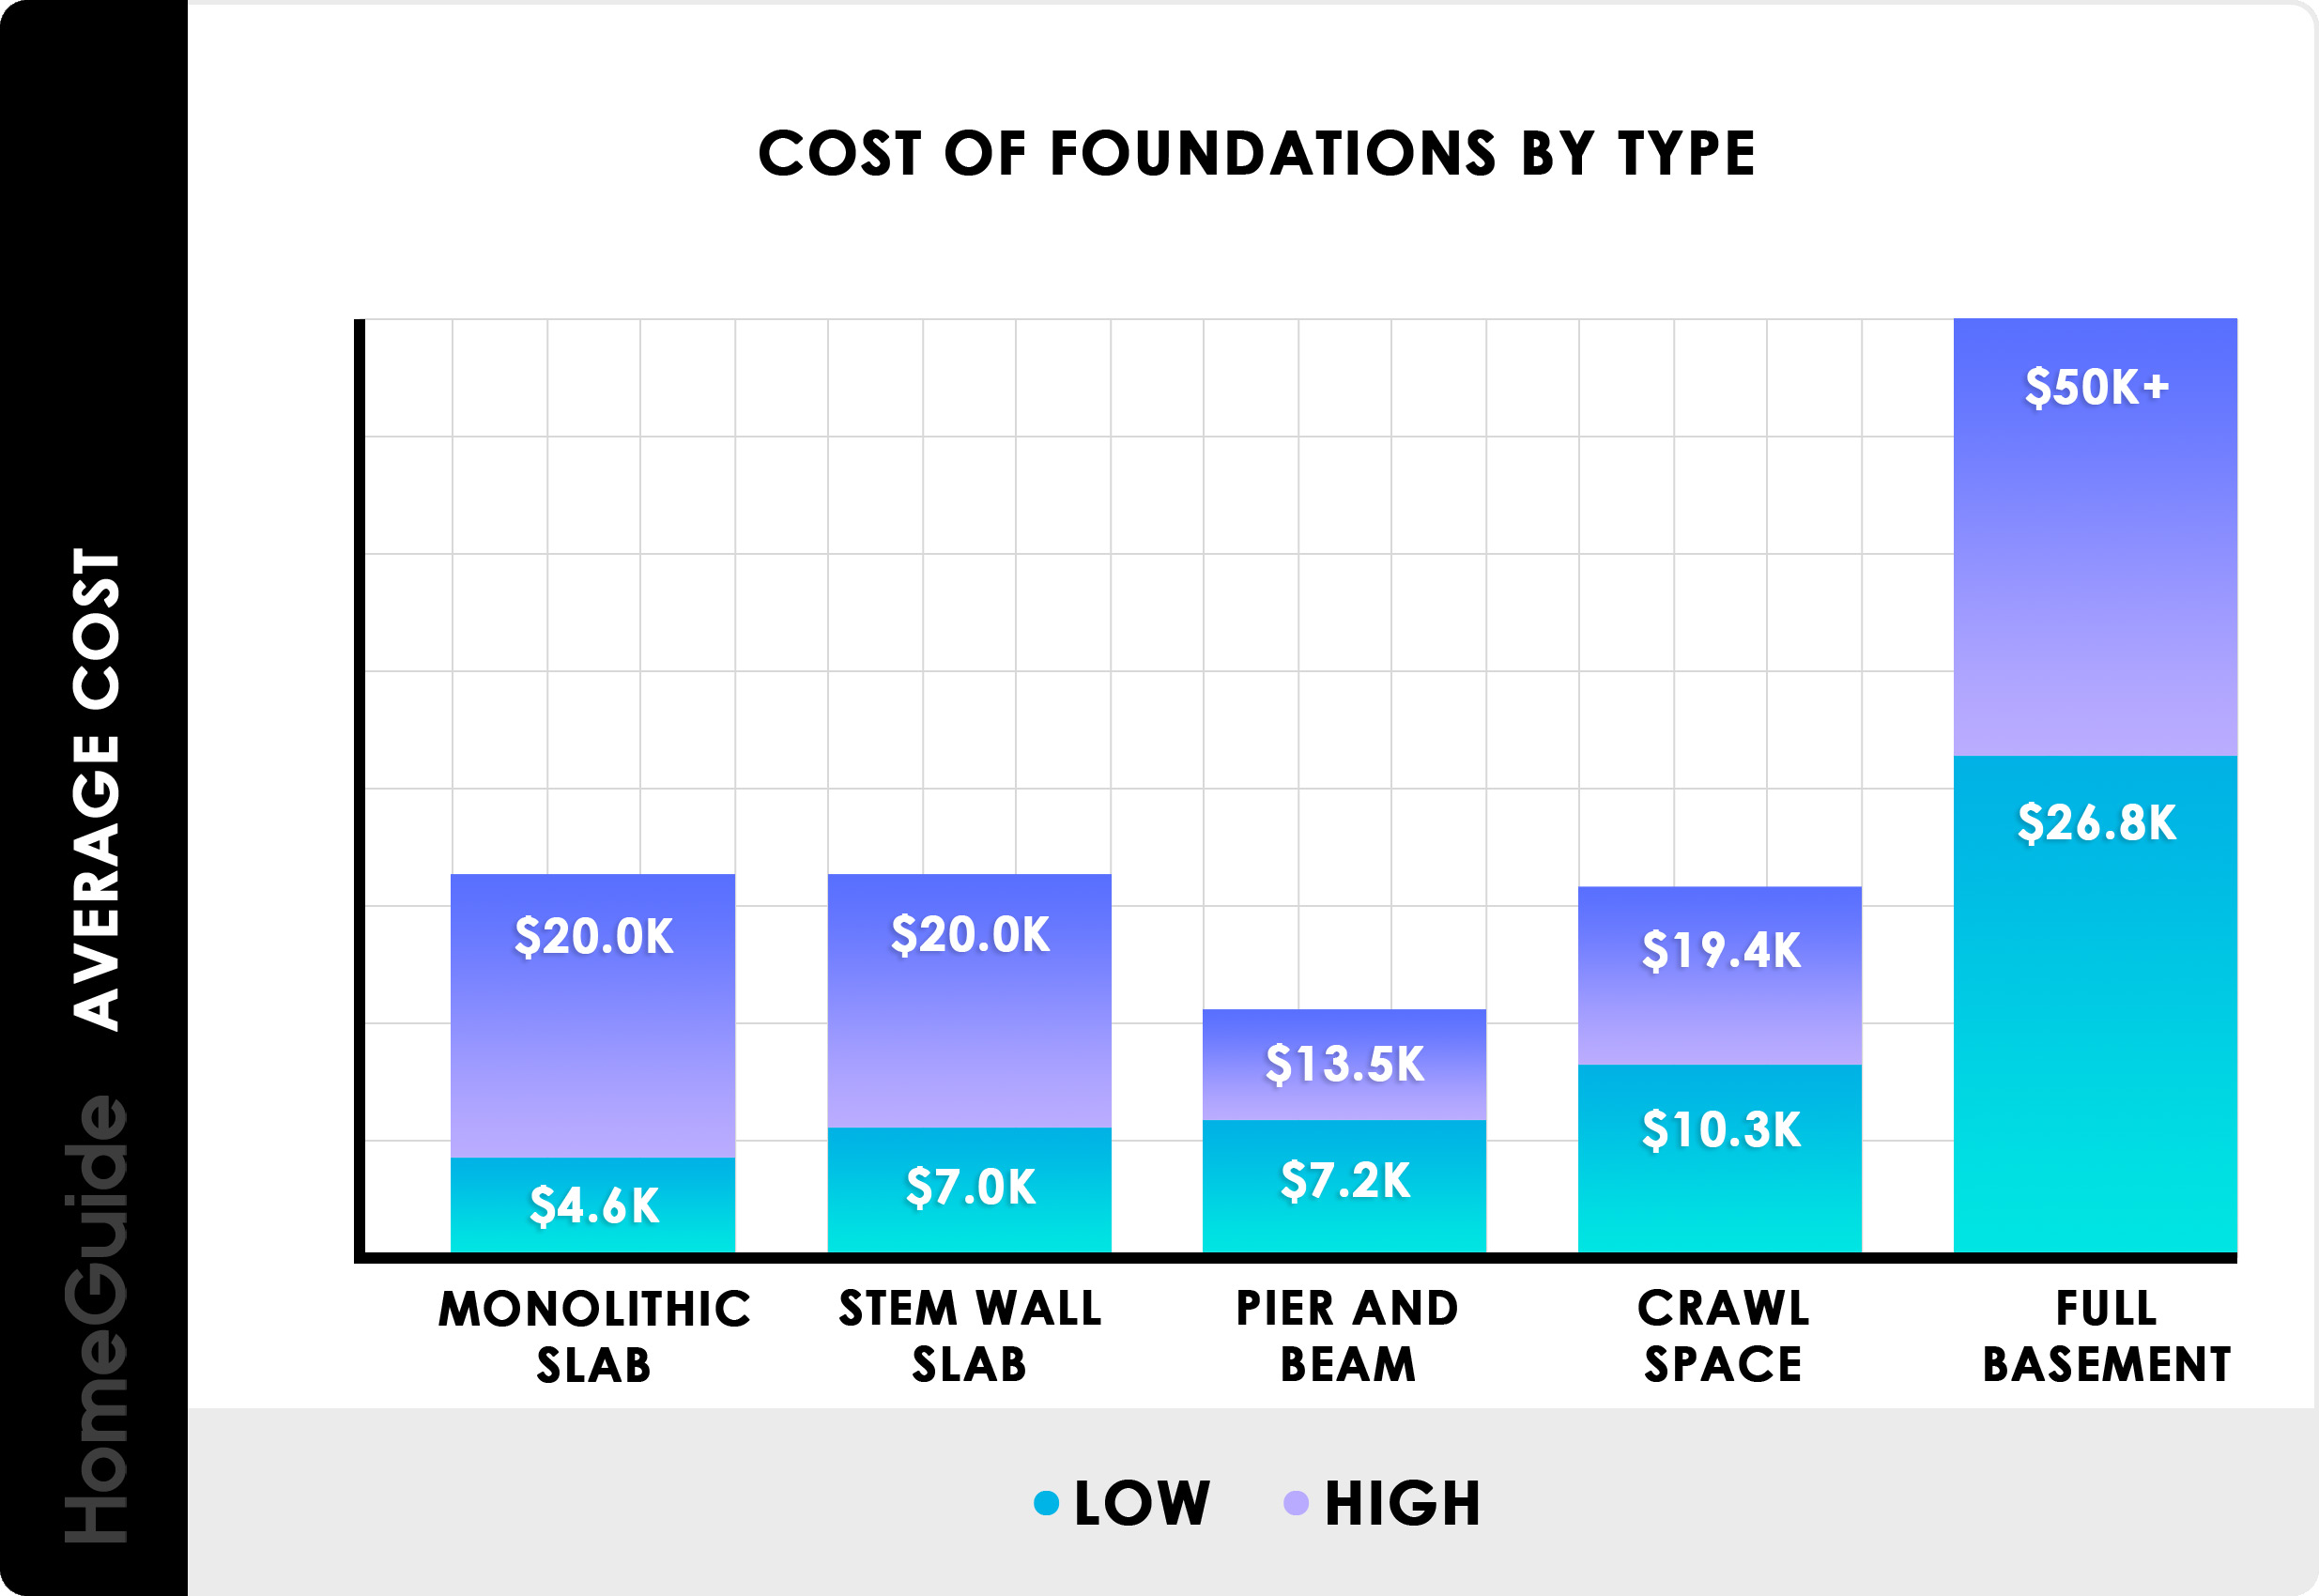 Cost of Foundations By Type - Concrete Slab, Pier and Beam, Crawl Space, Basement